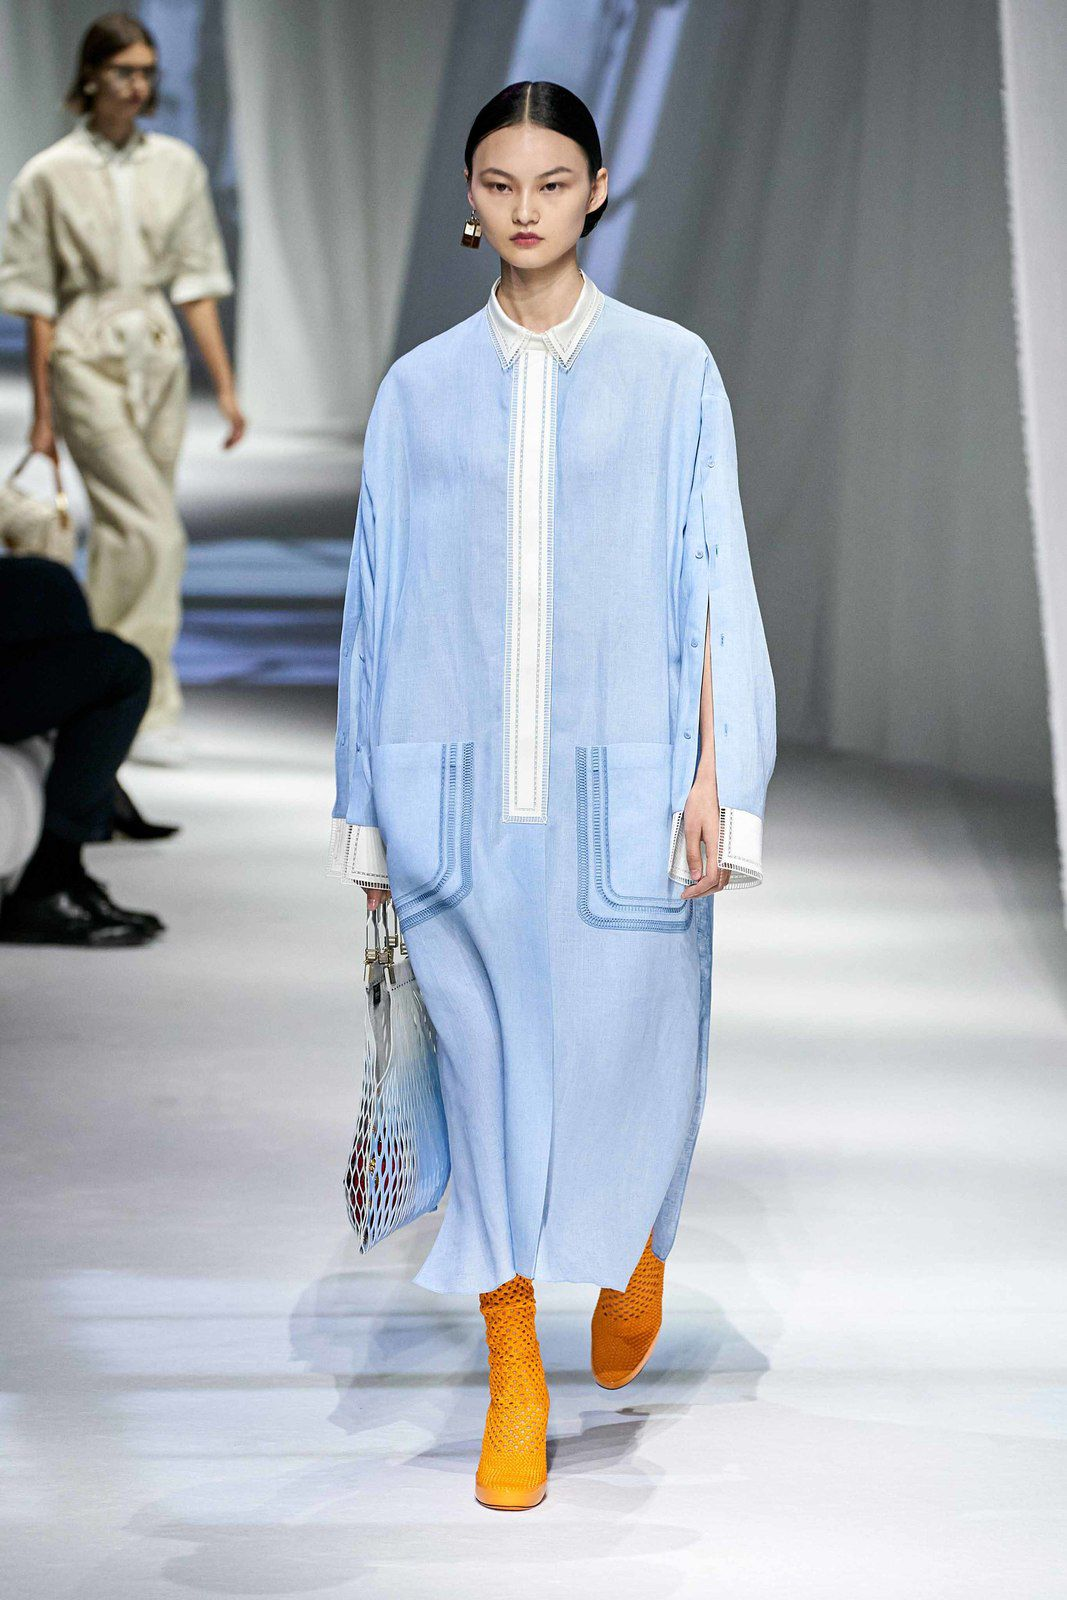 FENDI SPRING/SUMMER 2021 RTW COLLECTION AT MFW